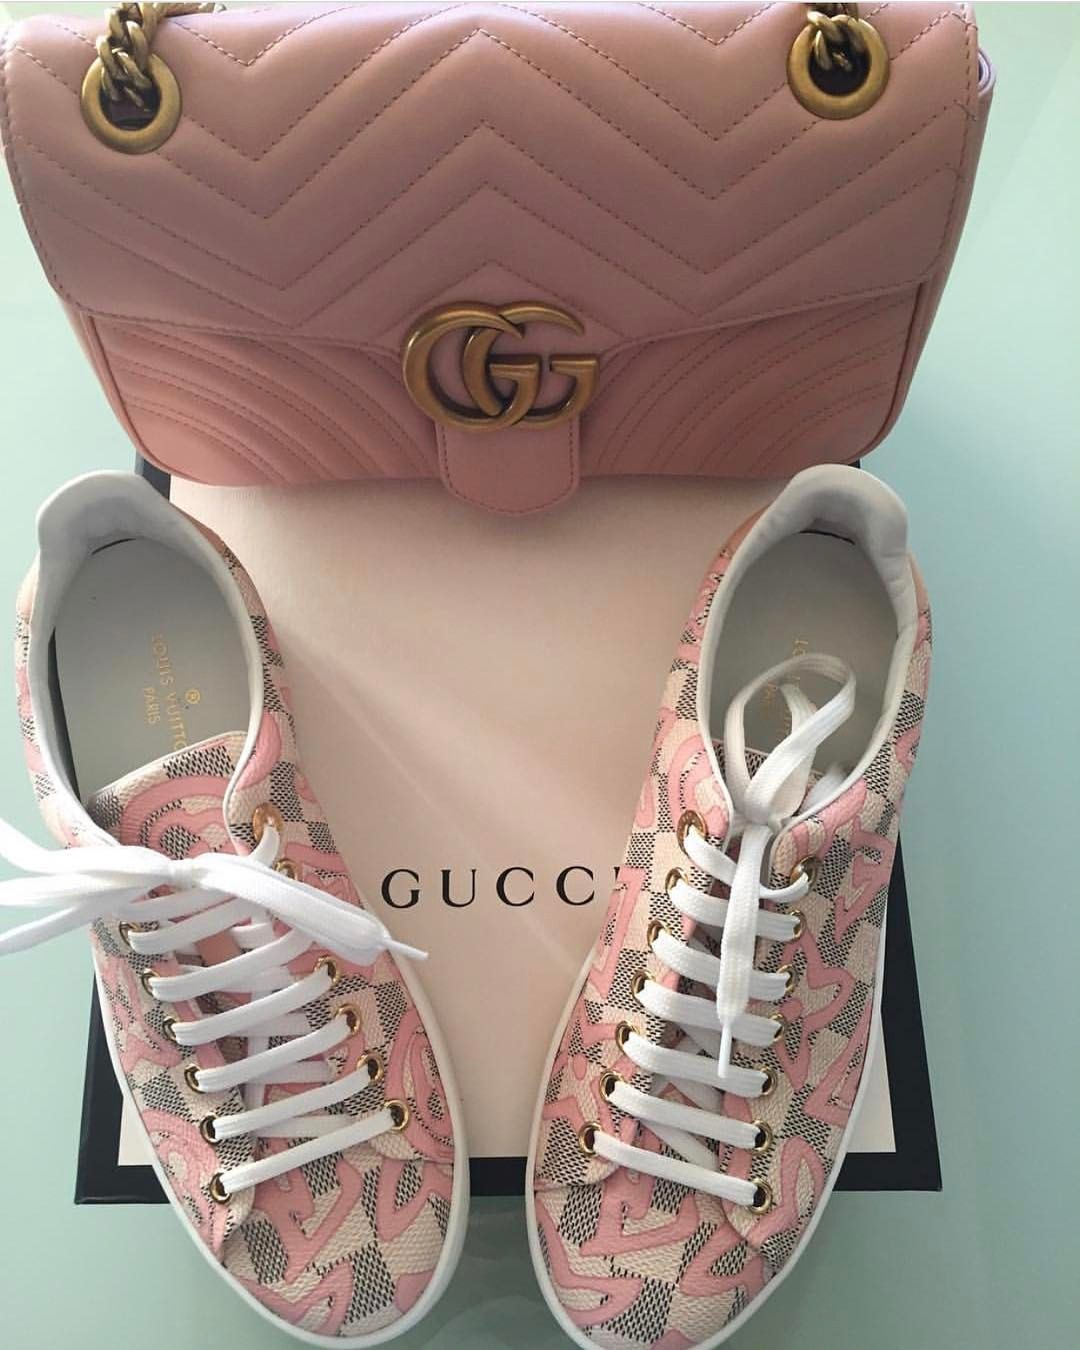 """6,877 Likes, 67 Comments - @stylishflychick on Instagram: """"#accessories  #duo · Gucci ..."""